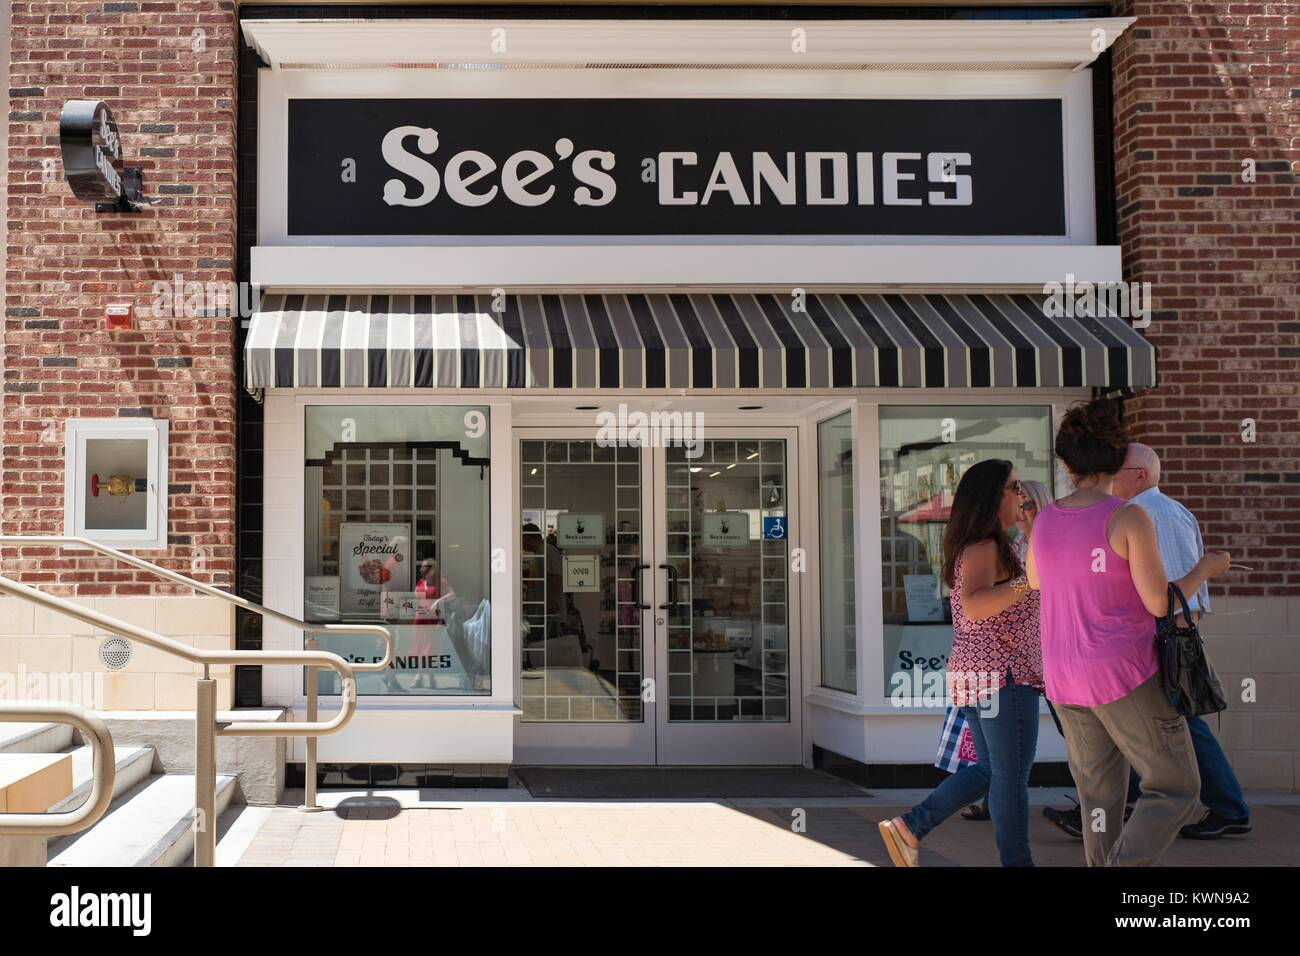 Shoppers walk past the facade of See's Candies in the upscale Broadway Plaza shopping center in Walnut Creek, - Stock Image